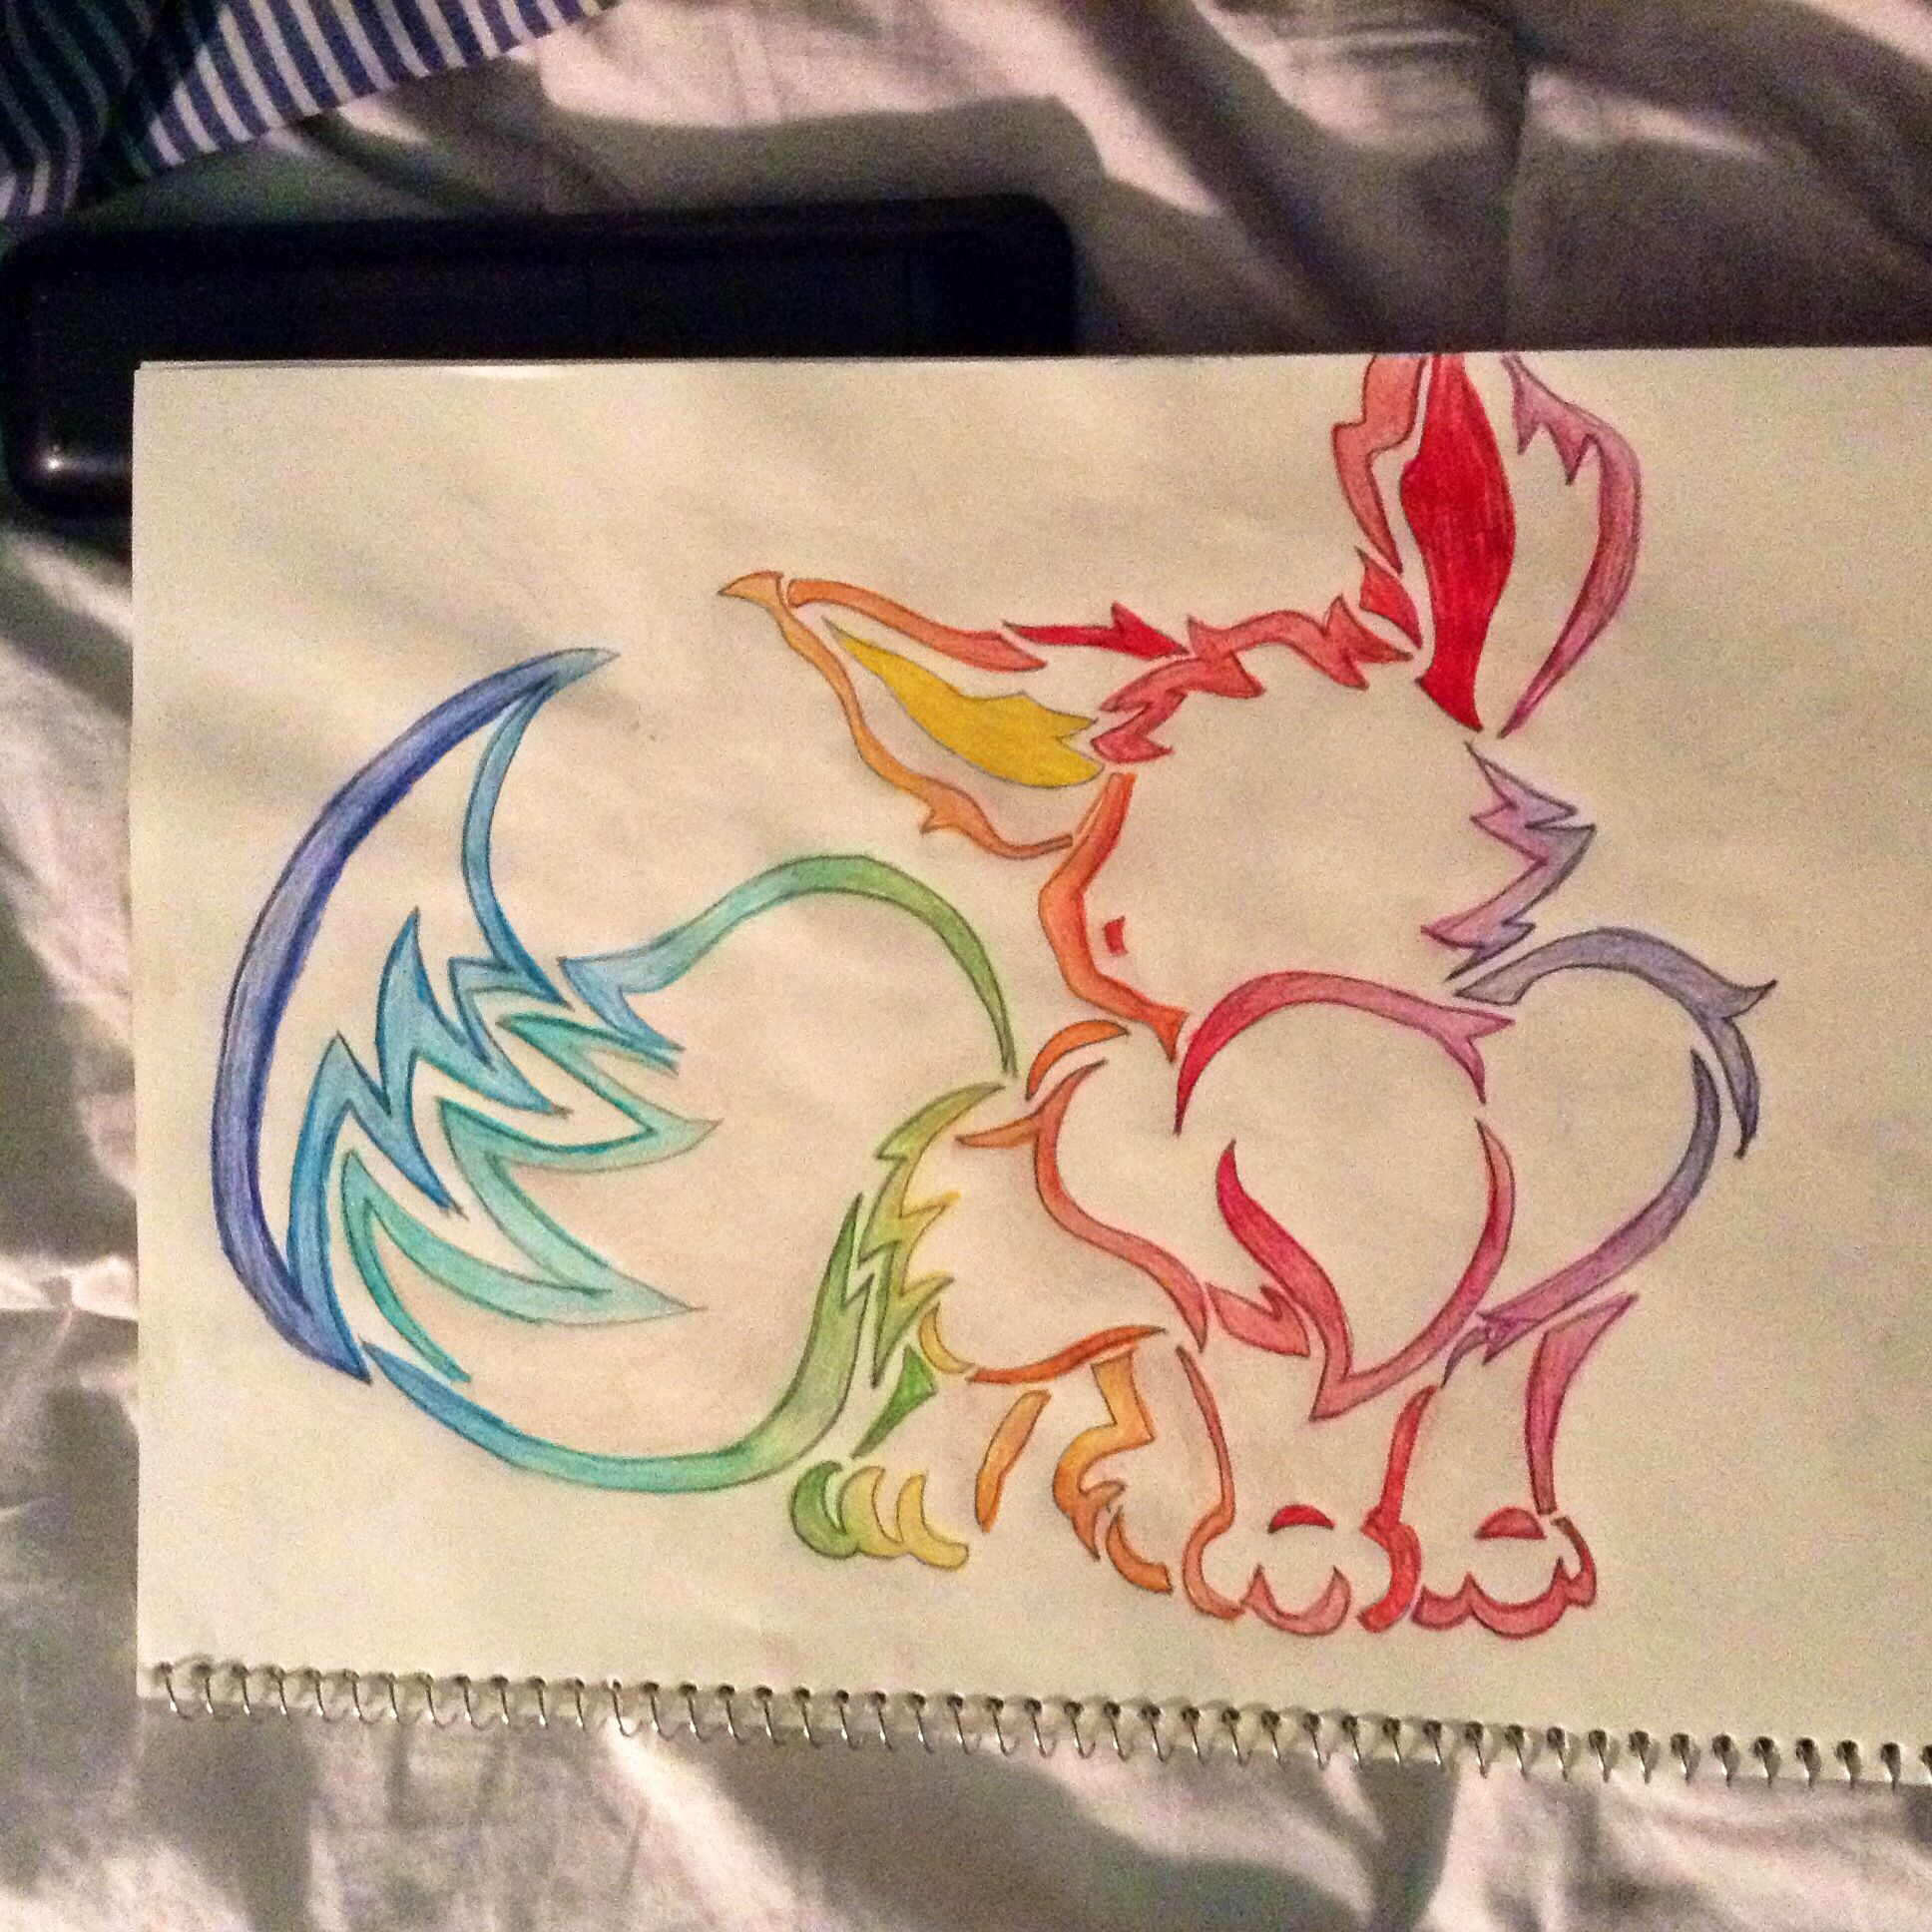 I just drew up this Eevee tattoo for Pokemon fans... Don't know if I like it or…